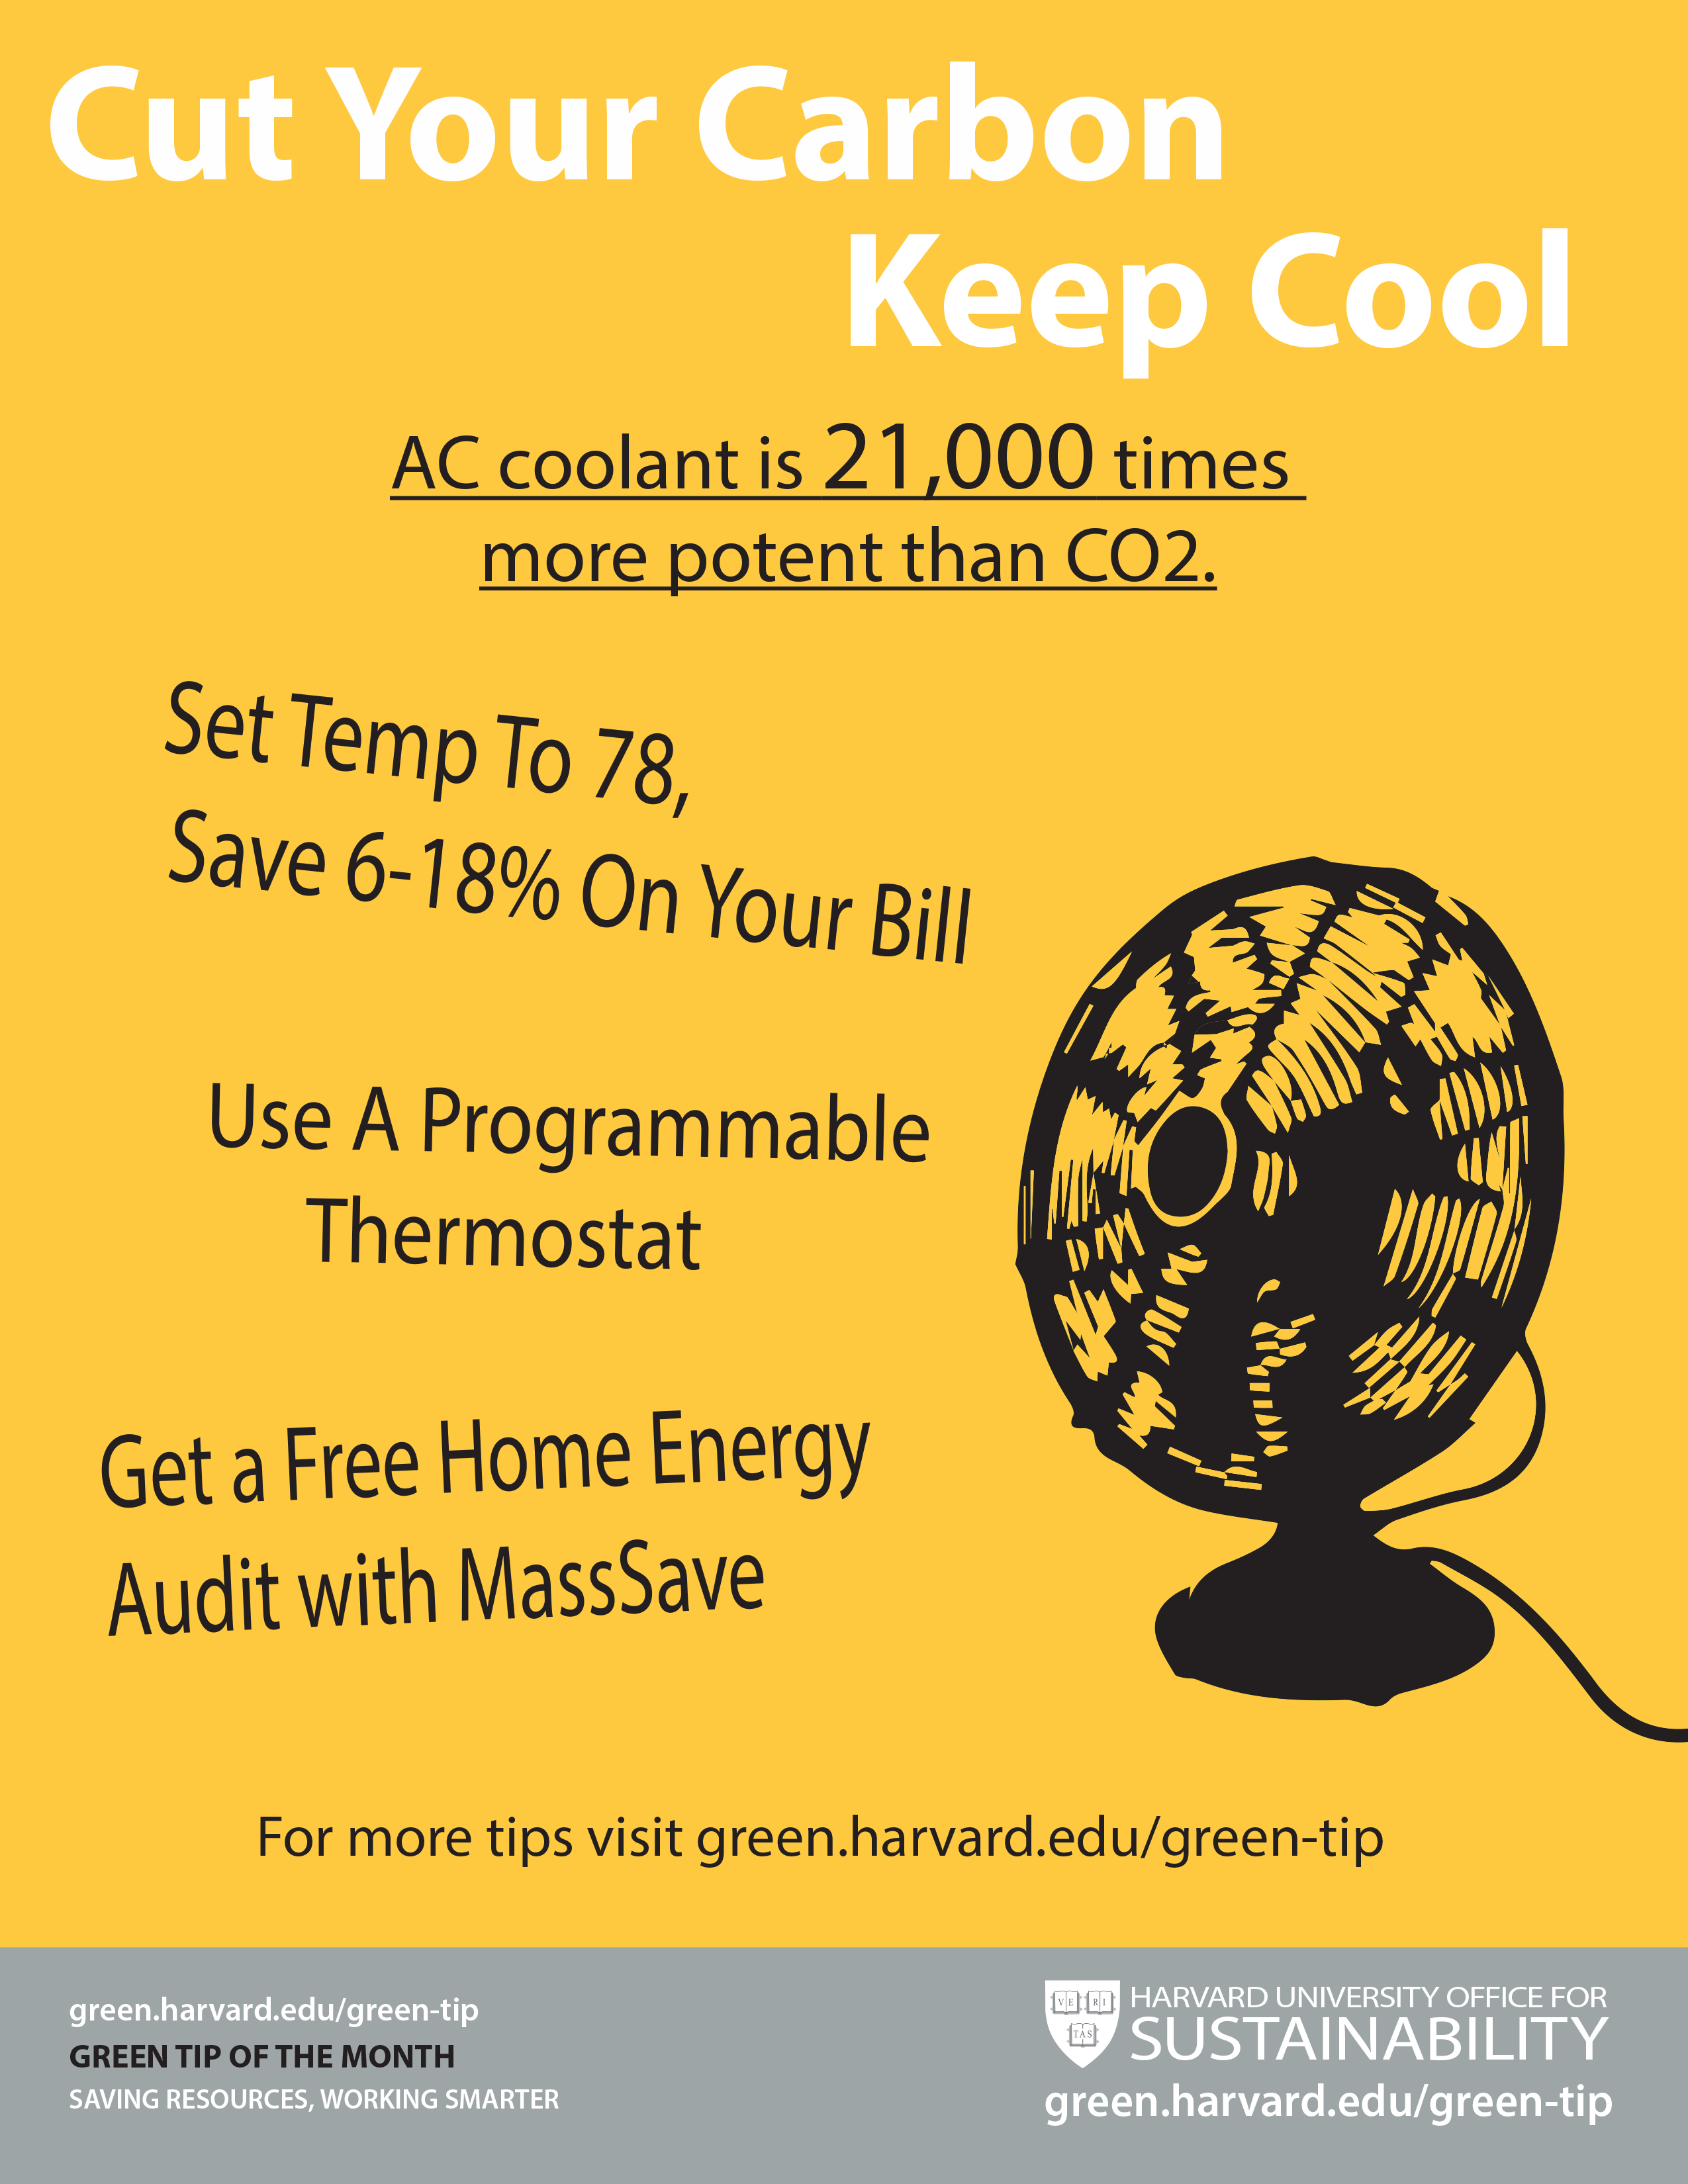 Keep Cool And Cut The Carbon Sustainability At Harvard